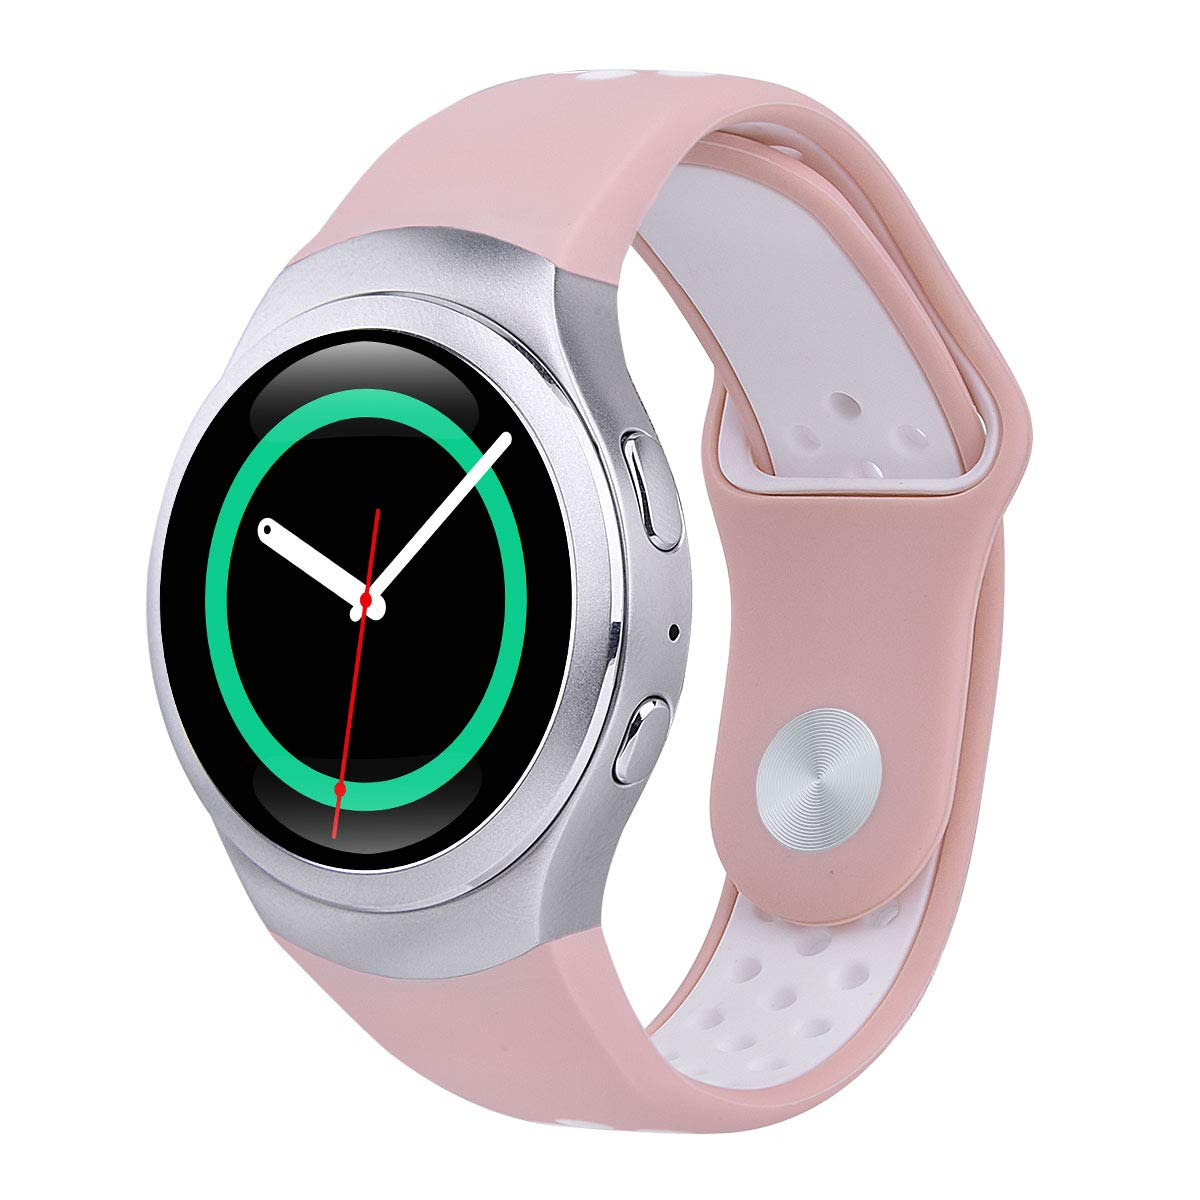 VIGOSS Compatible Gear S2 Bands (NOT fit S2 Classic), Gear S2 Soft Silicone Watch Band Fitness Wristband Sport Replacement Strap for Samsung Gear S2 ...